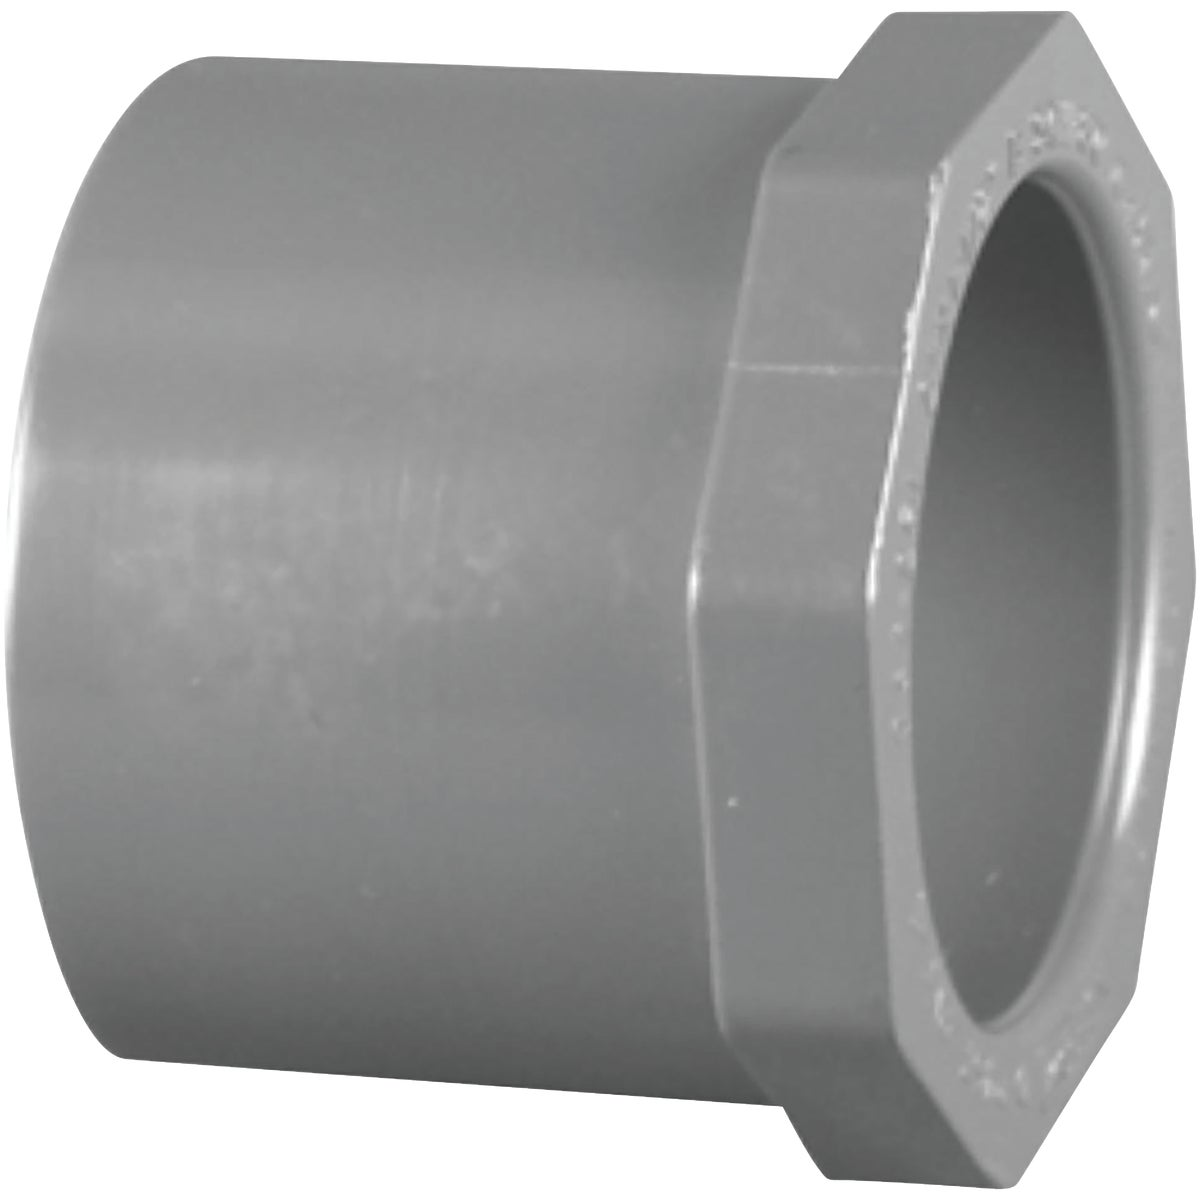 1-1/2X1 SPXS PVC BUSHING - 302508 by Genova Inc